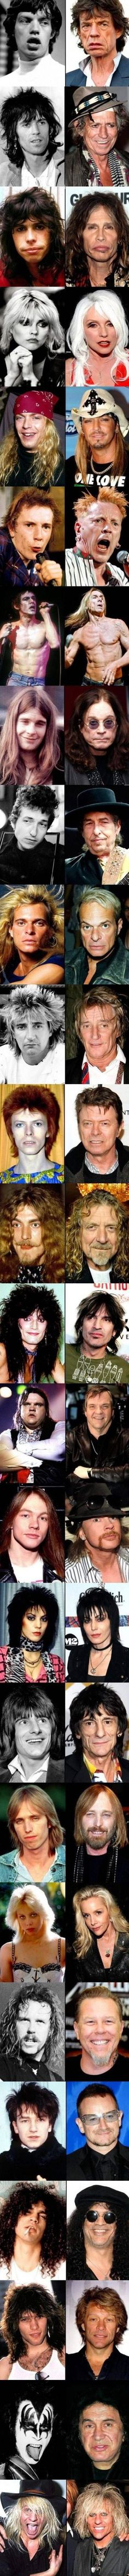 Musicans age timeline — 26 rock stars, then and now...